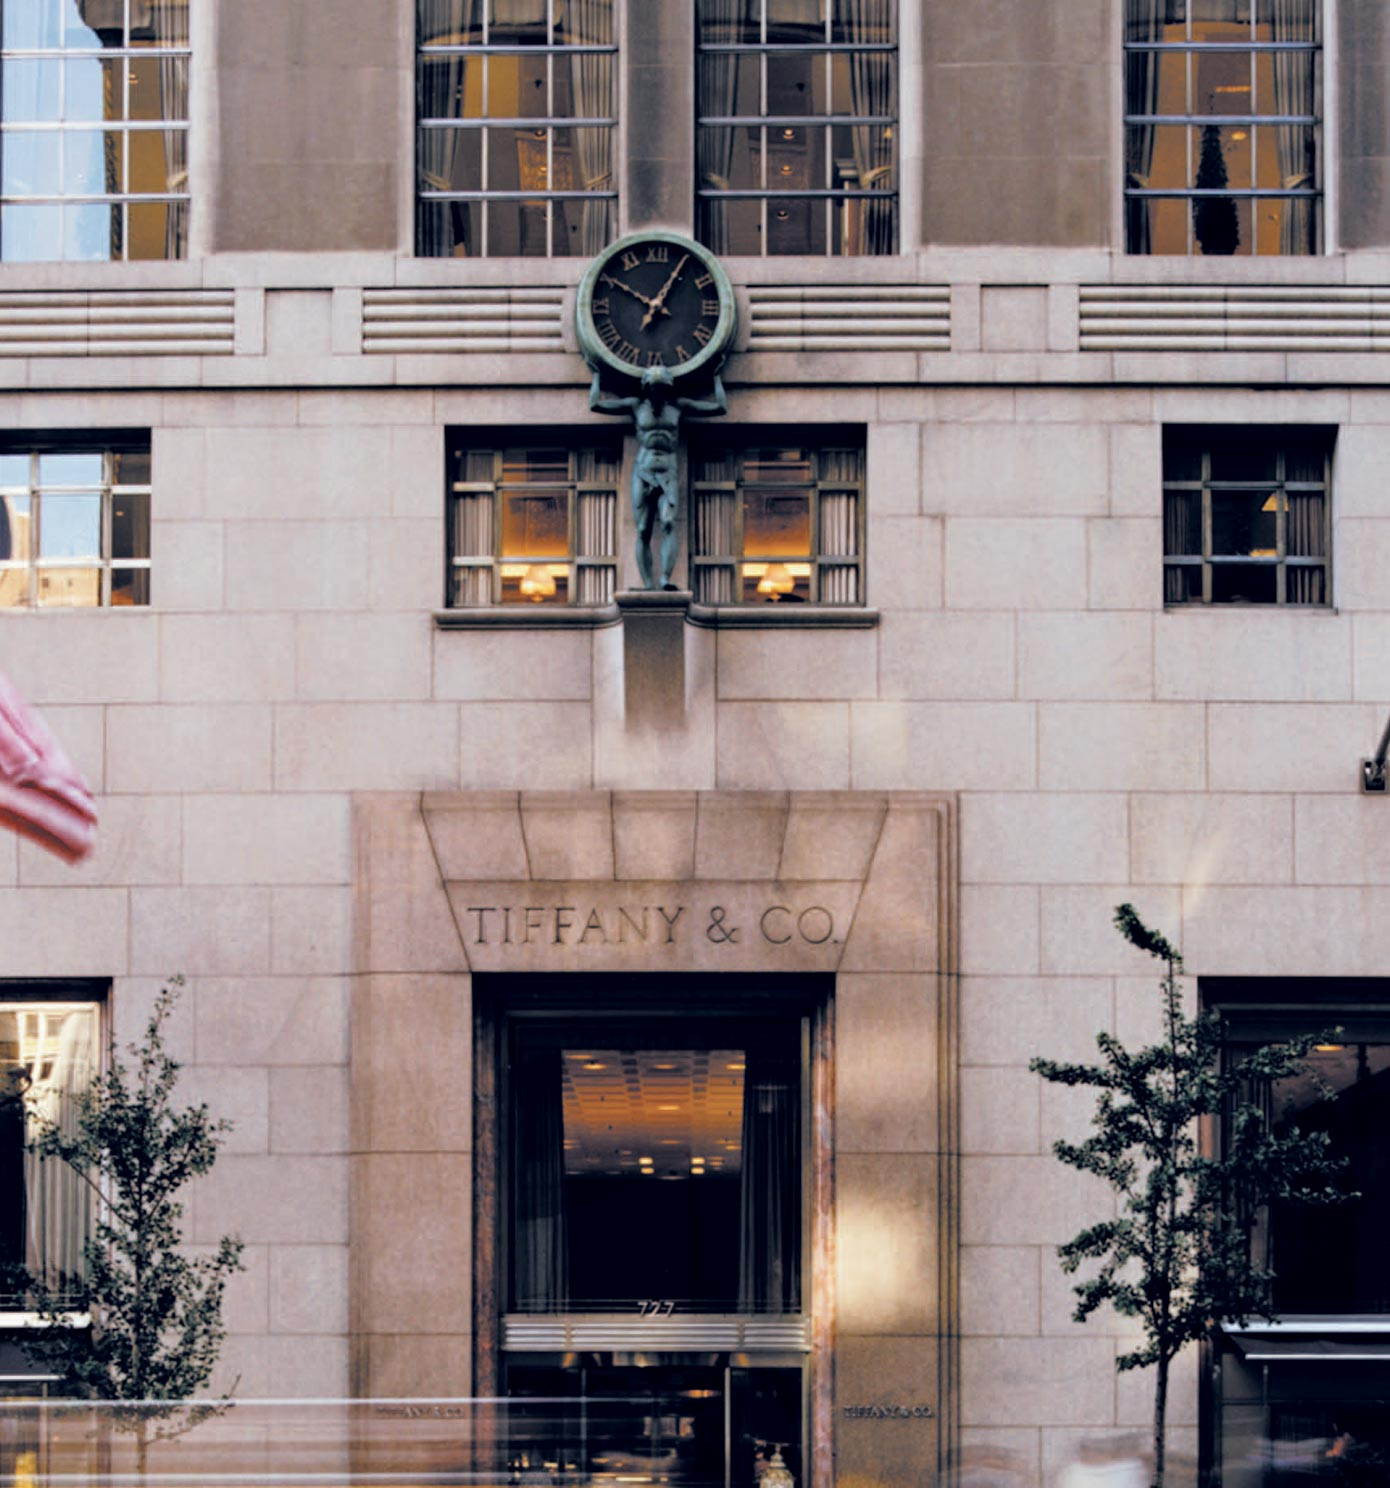 The Tiffany Flagship Store on Fifth Avenue